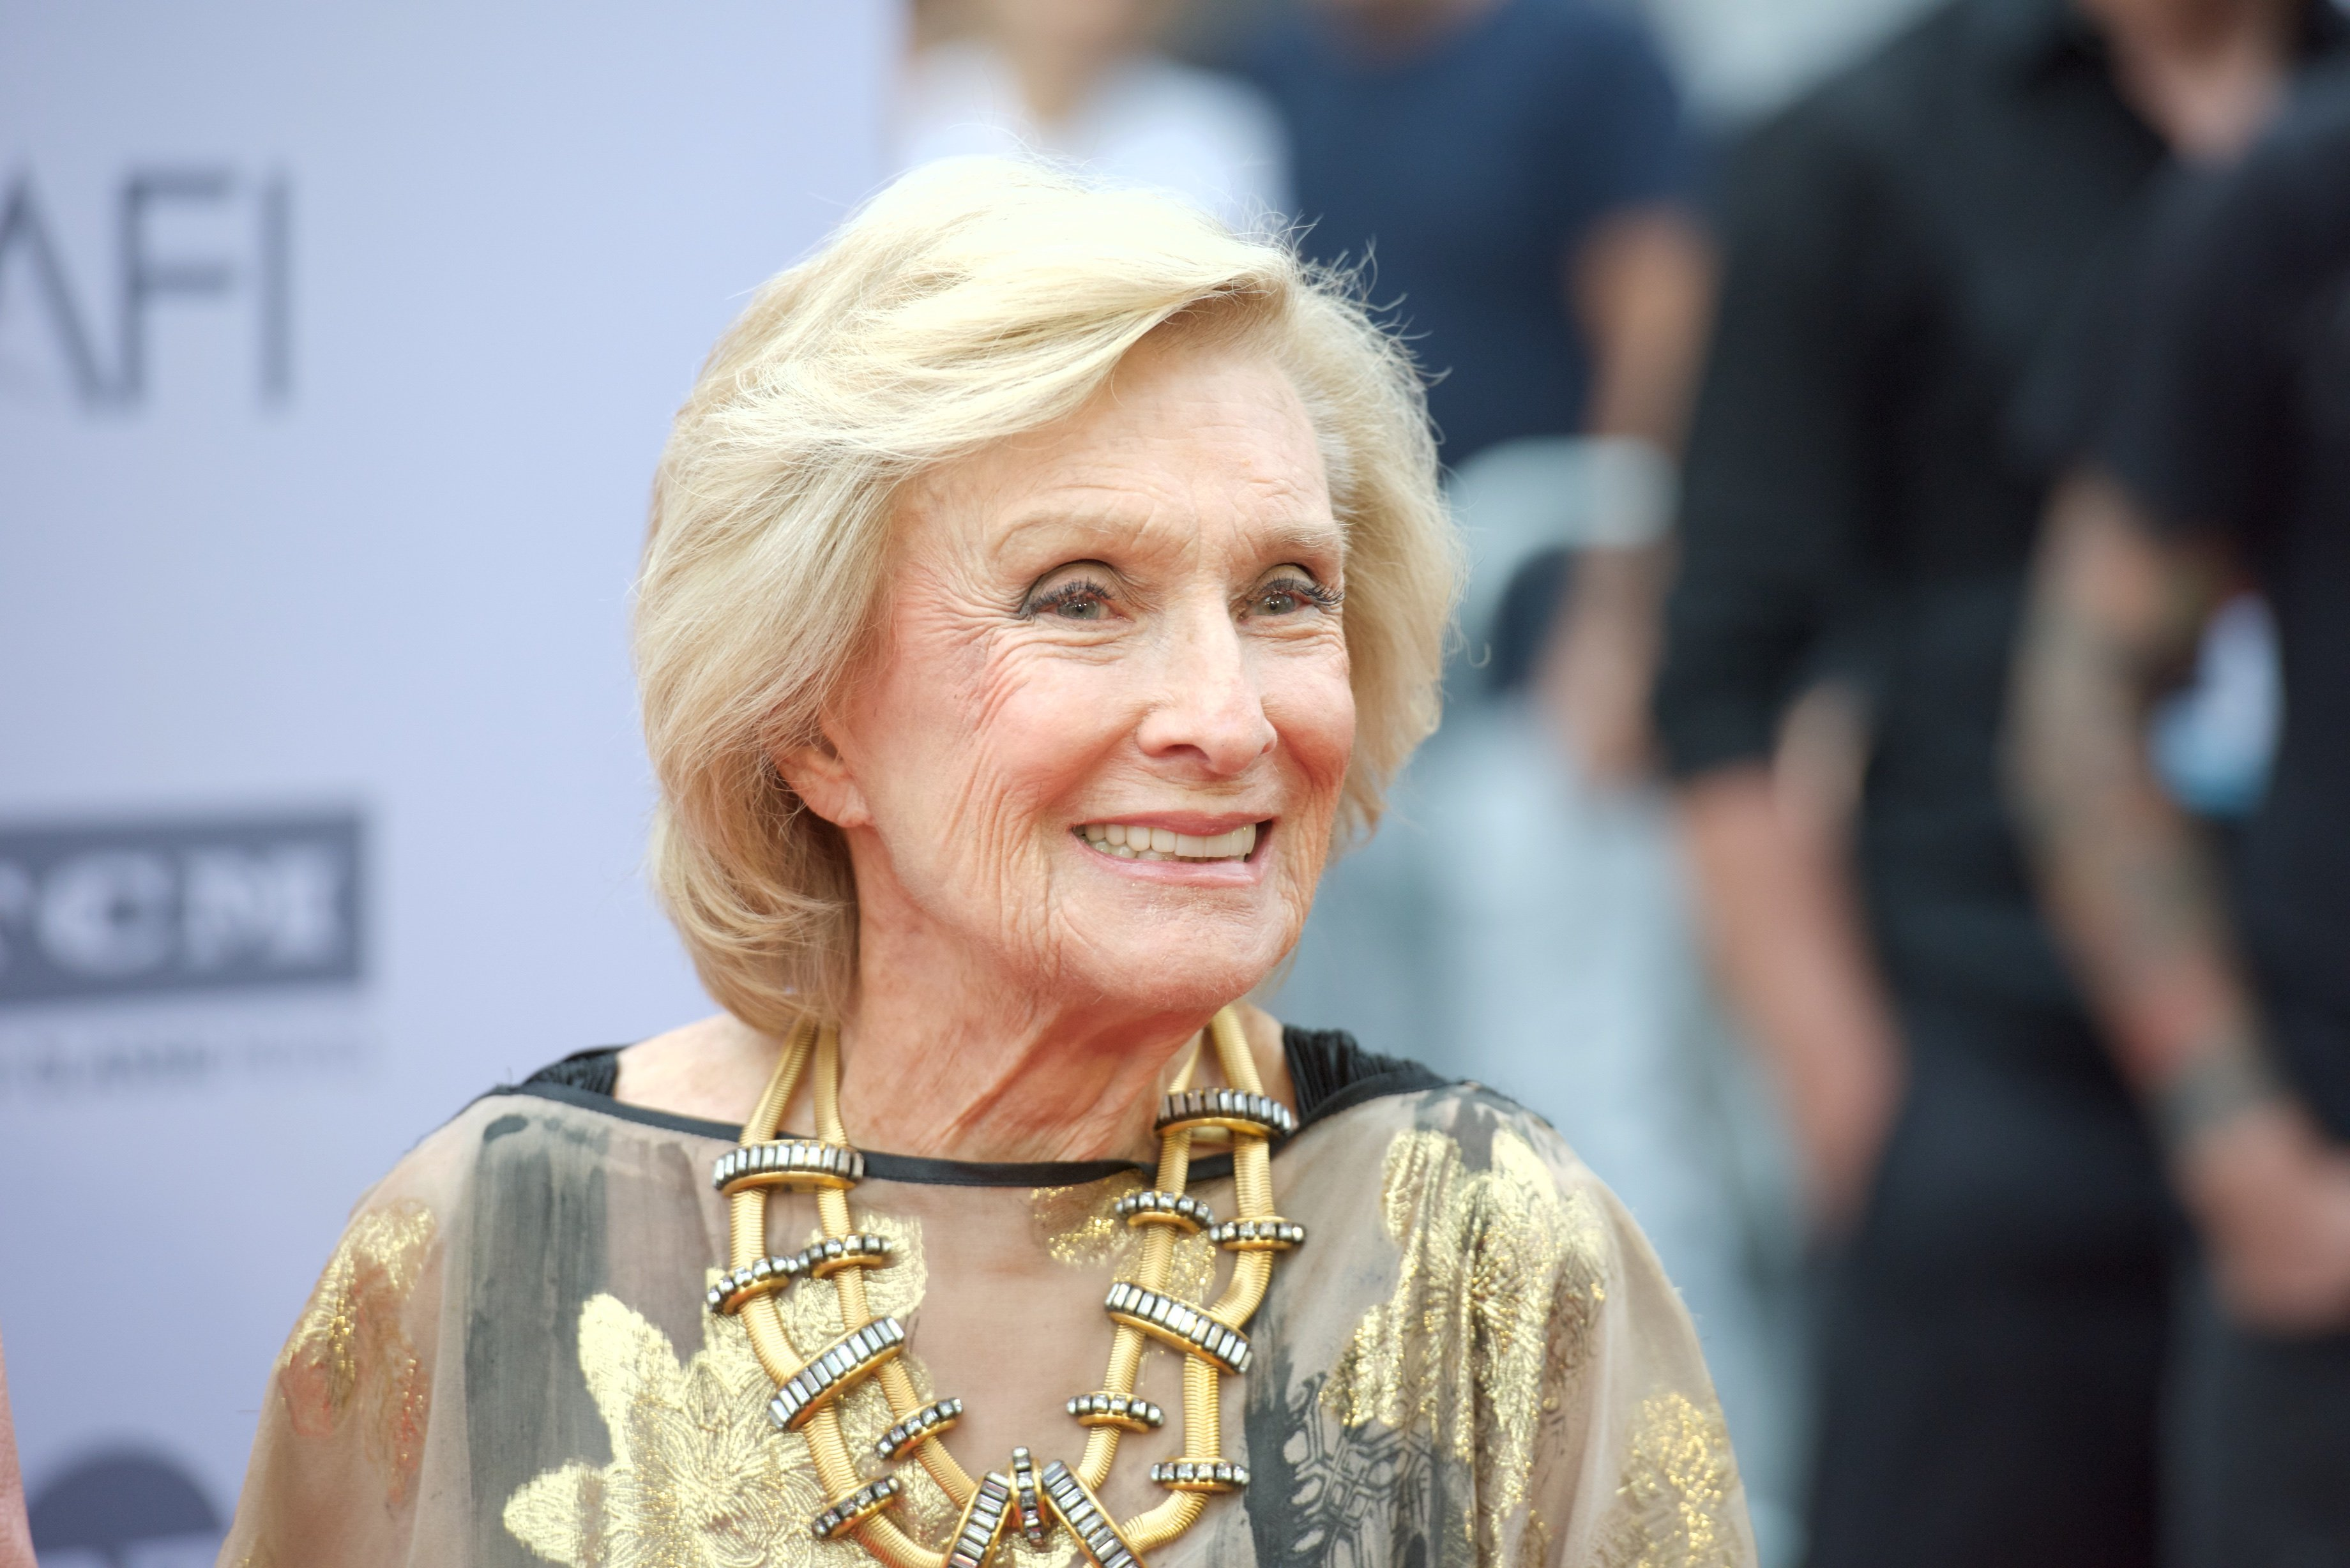 Cloris Leachman attends the 44th AFI Life Achievement Awards Gala Tribute to John Williams at Dolby Theatre on June 9, 2016 in Hollywood, California | Photo: Getty Images